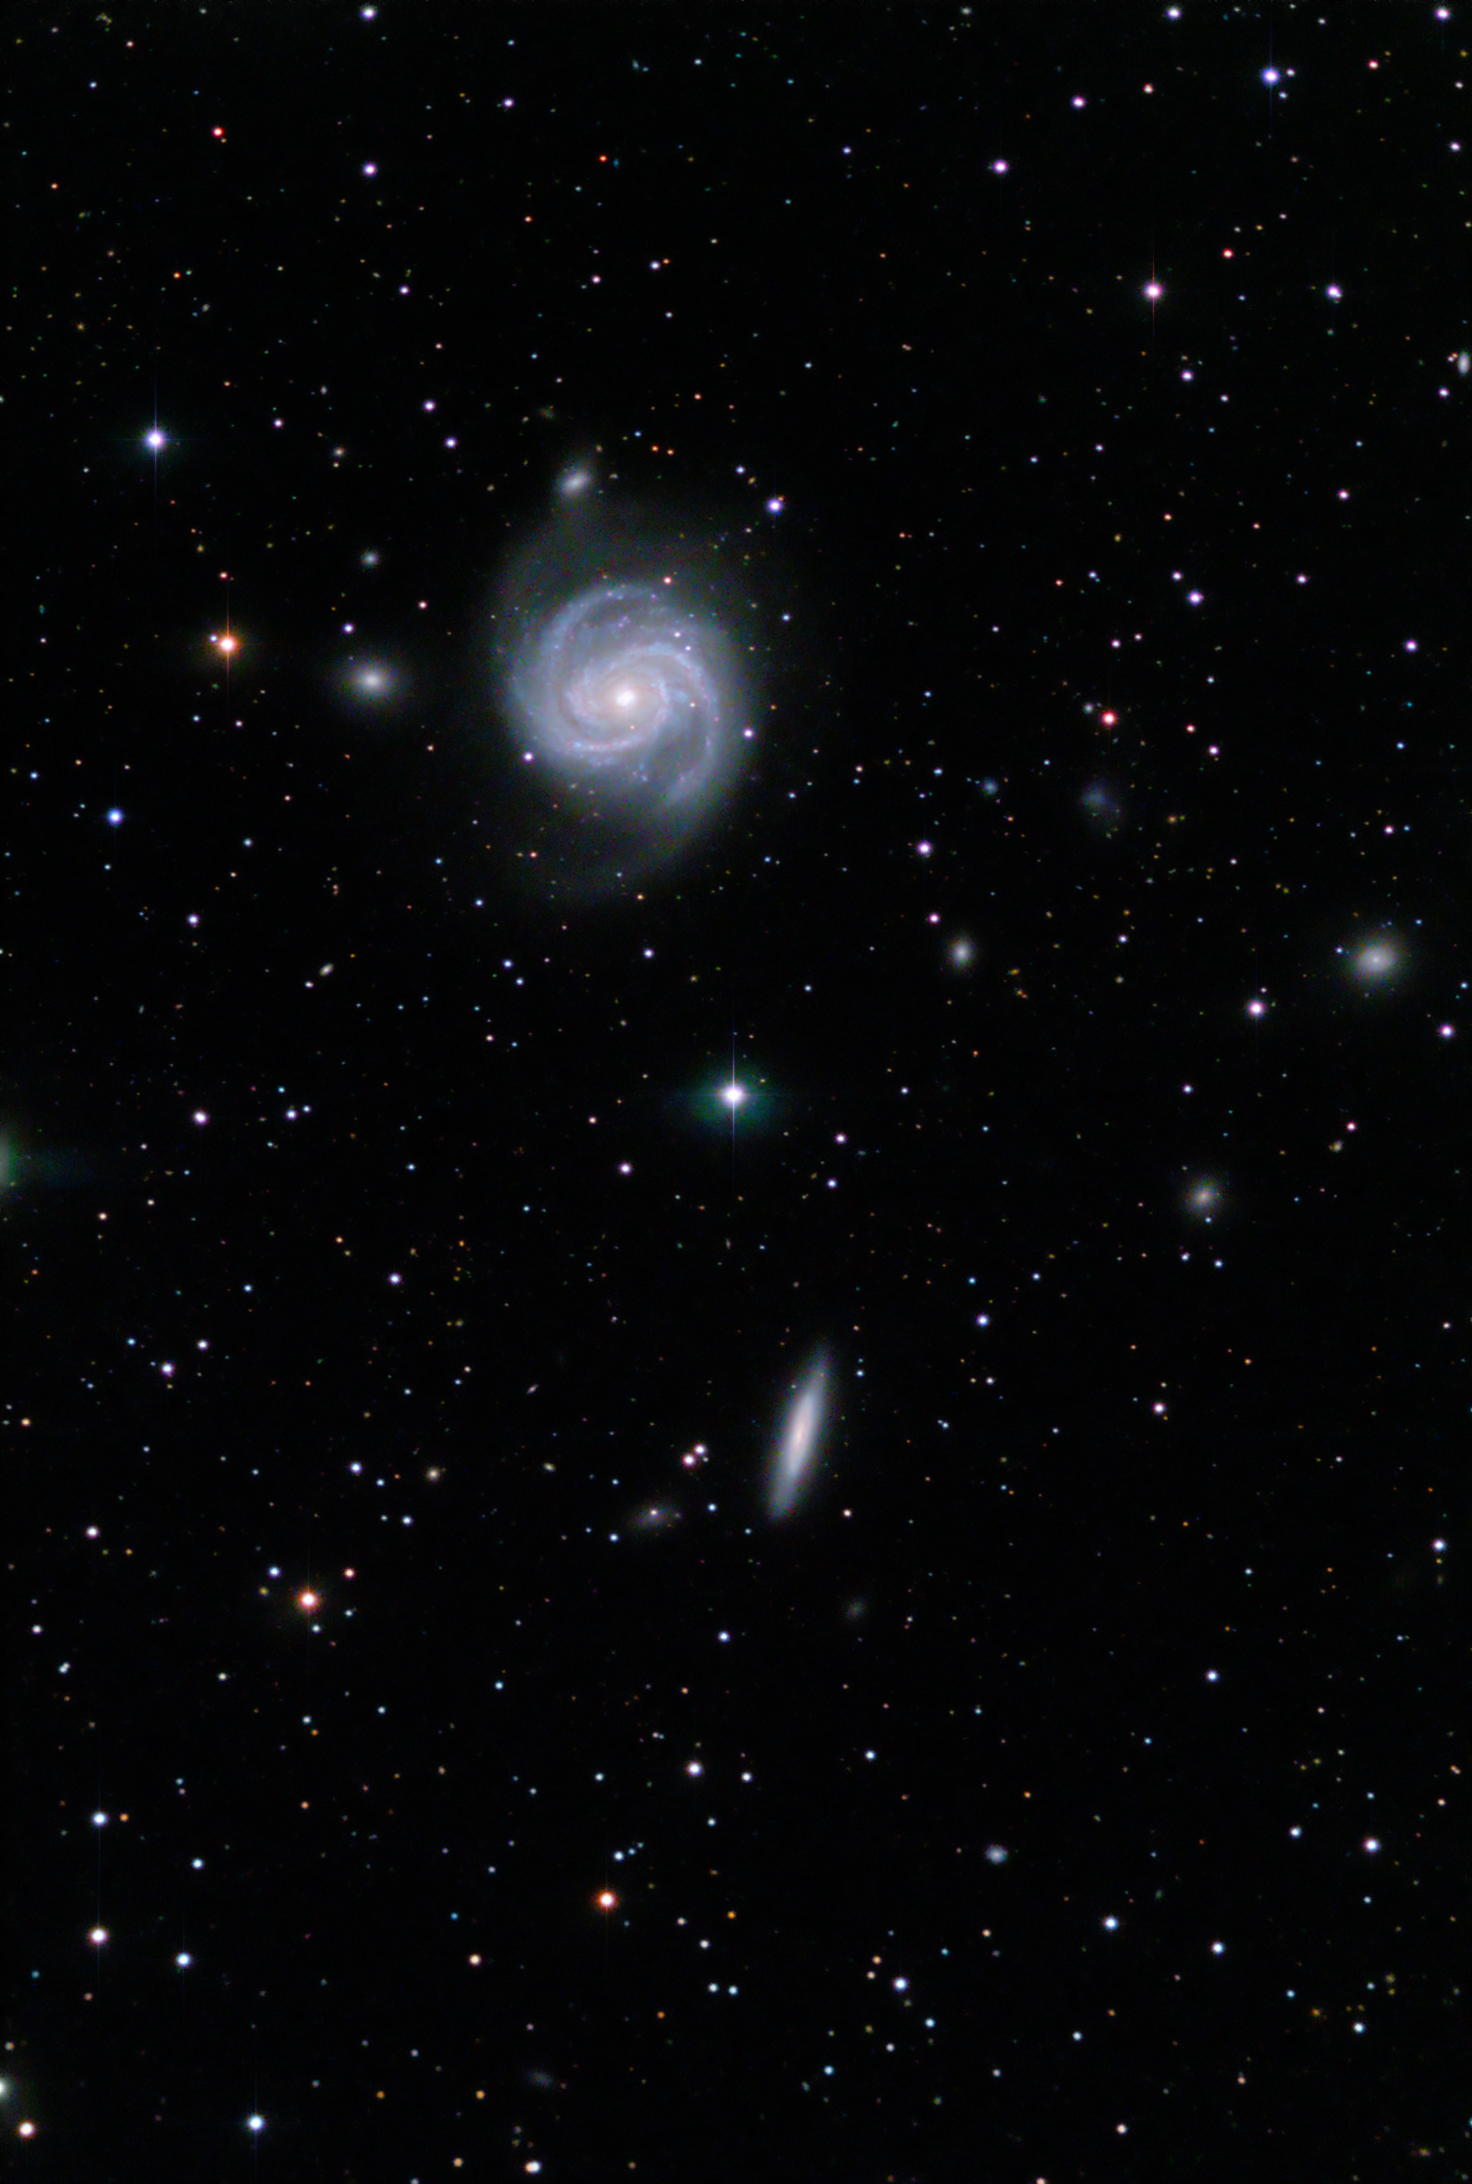 (Photo courtesy of Mark Bailey) Galaxies M100, also known as the Blow Dryer Galaxy, and NGC 4312. These galaxies are members of the Virgo cluster of galaxies, 50 million light years away, in constellation Coma Berenices. There are several other dwarf galaxies also in the image, photographed at Torrey House Alpenglow Observatory, May 28, 2017.